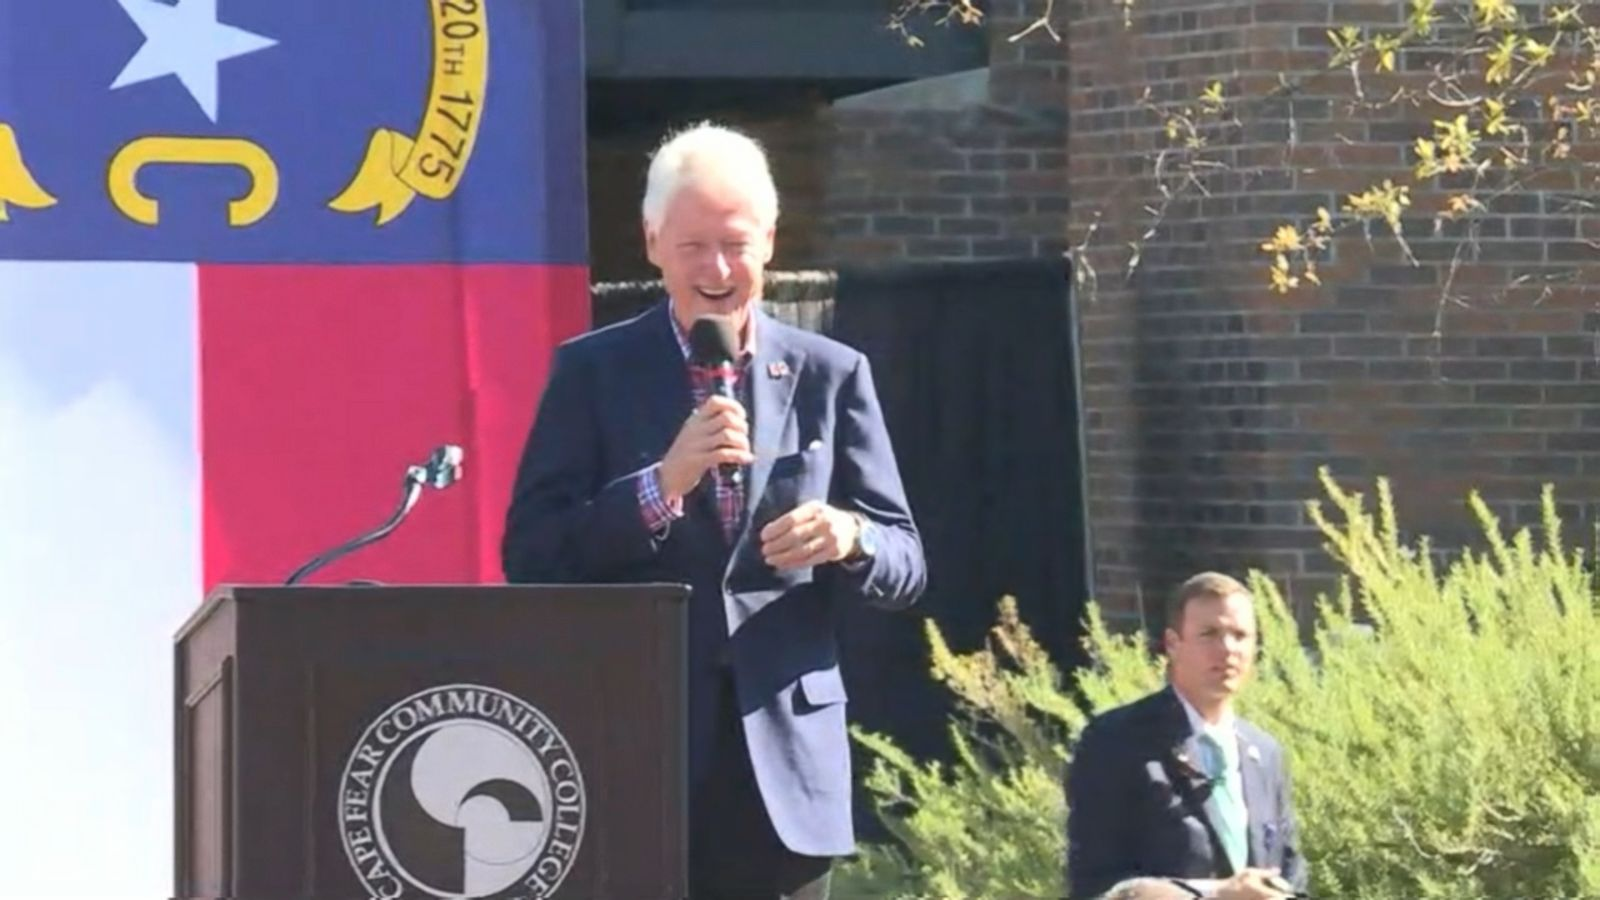 """You don't have to worry because your candidate doesn't pay taxes,"" Bill Clinton retorted to a Donald Trump supporter in his audience during a campaign stop in Wilmington, North Carolina."